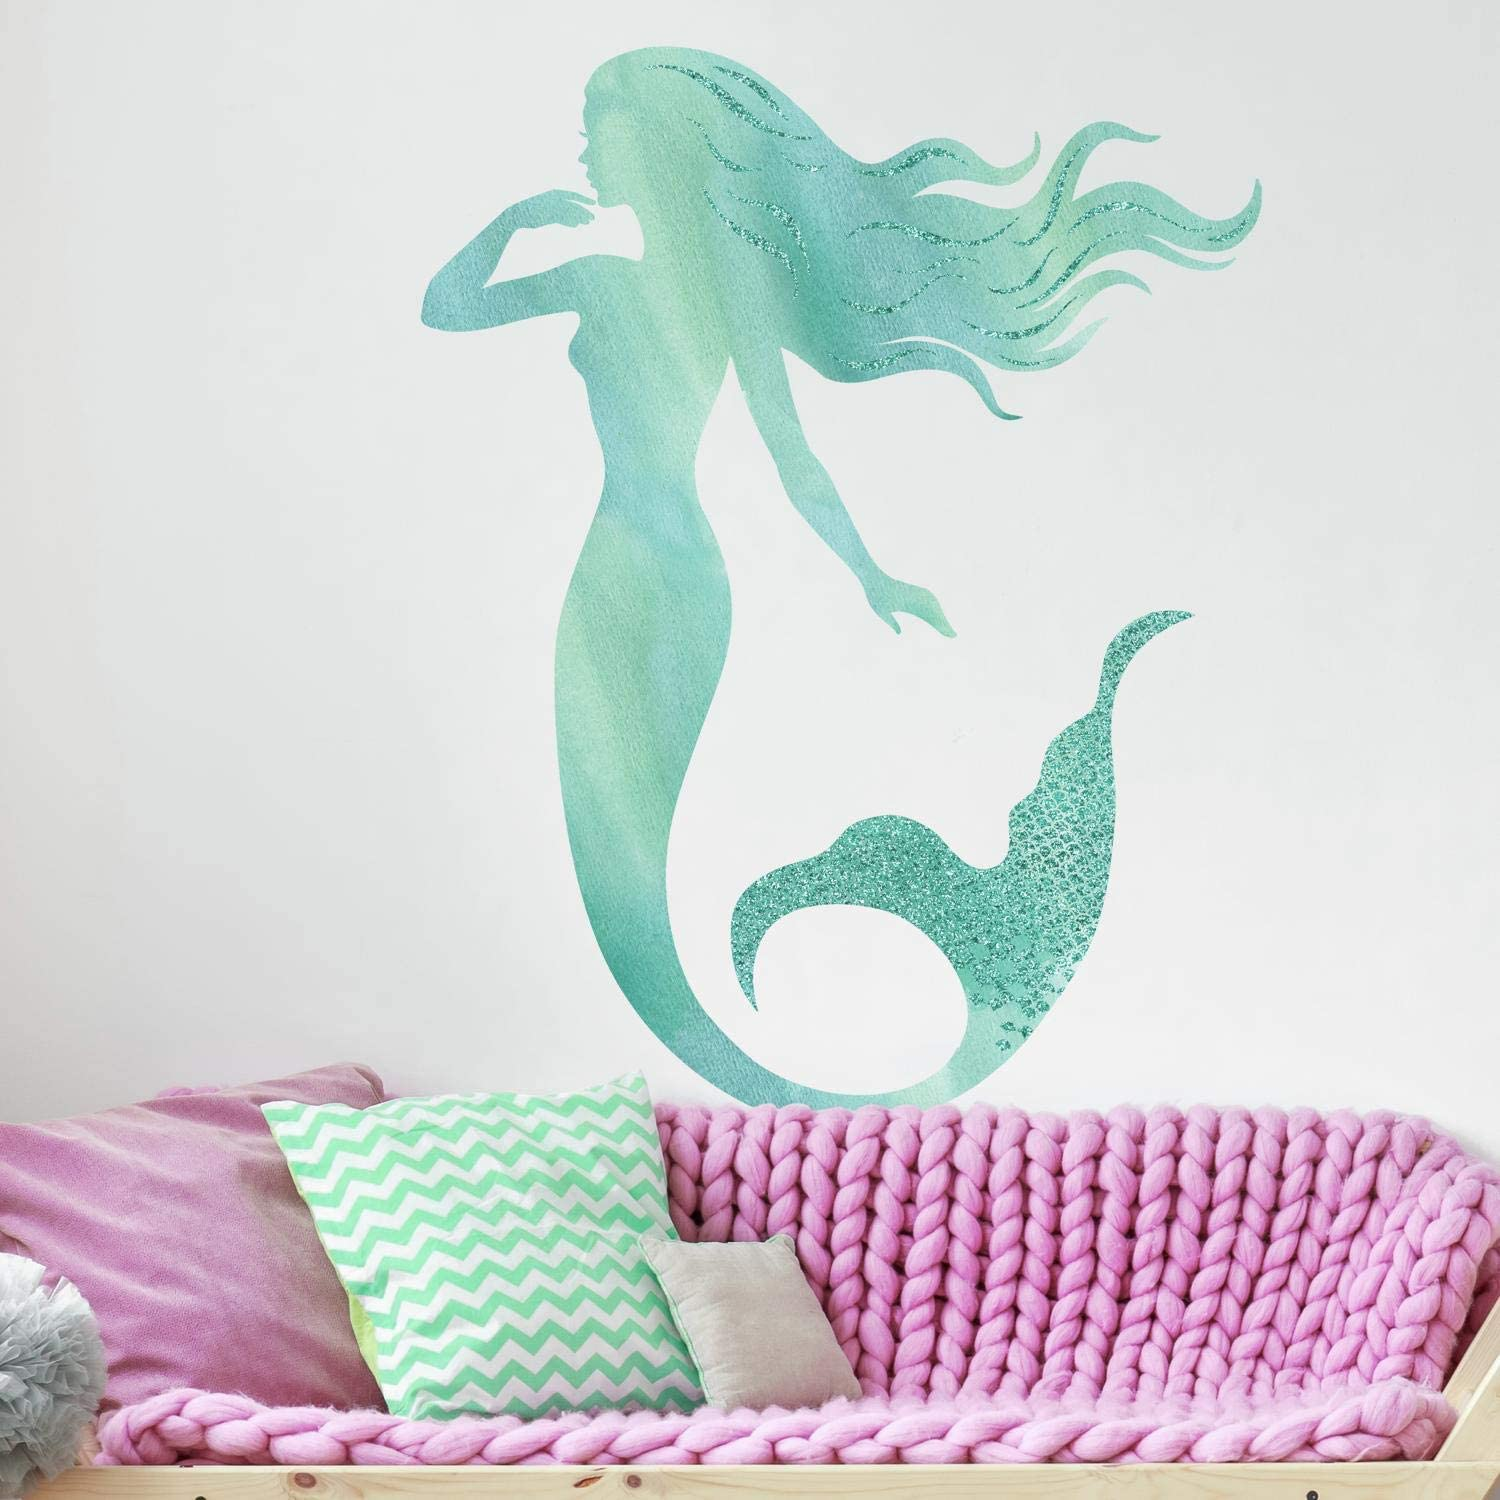 RoomMates Glitter Mermaid Peel and Stick Giant Wall Decals,Blue, Aqua, Teal